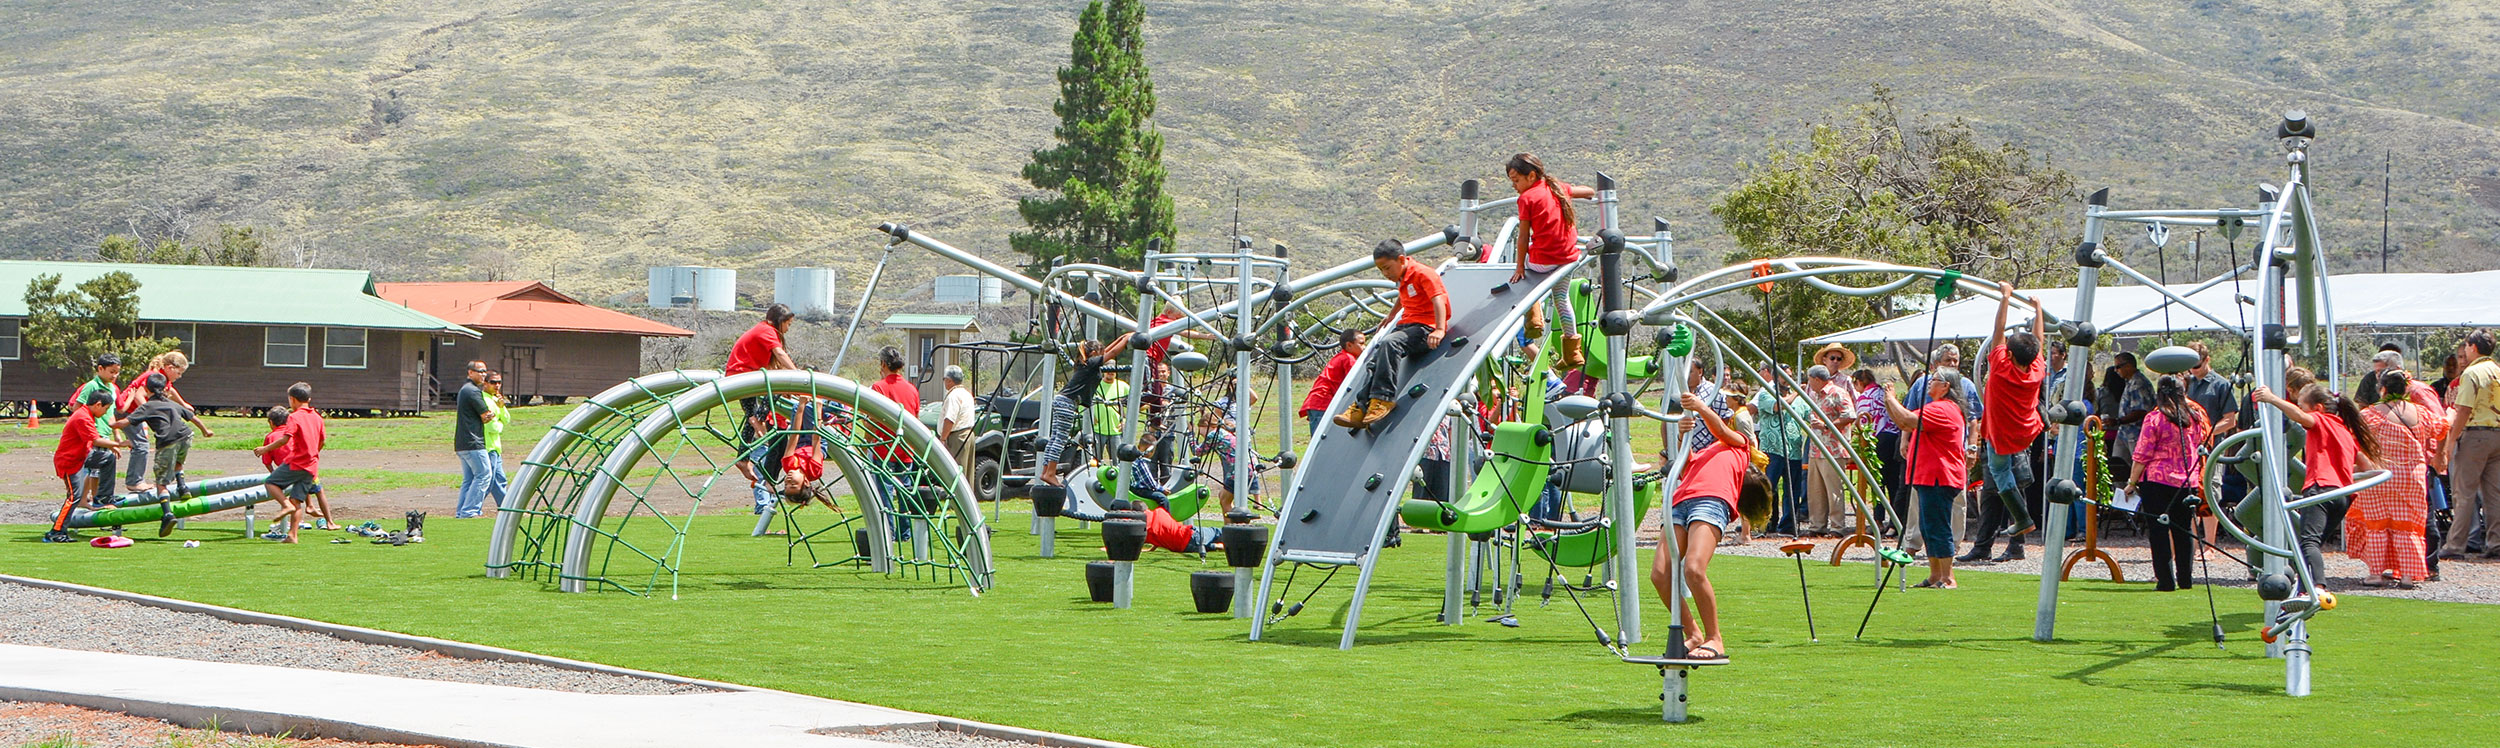 Hawaiian Park and Playground with KOMPAN play structures distributed by HIghwire